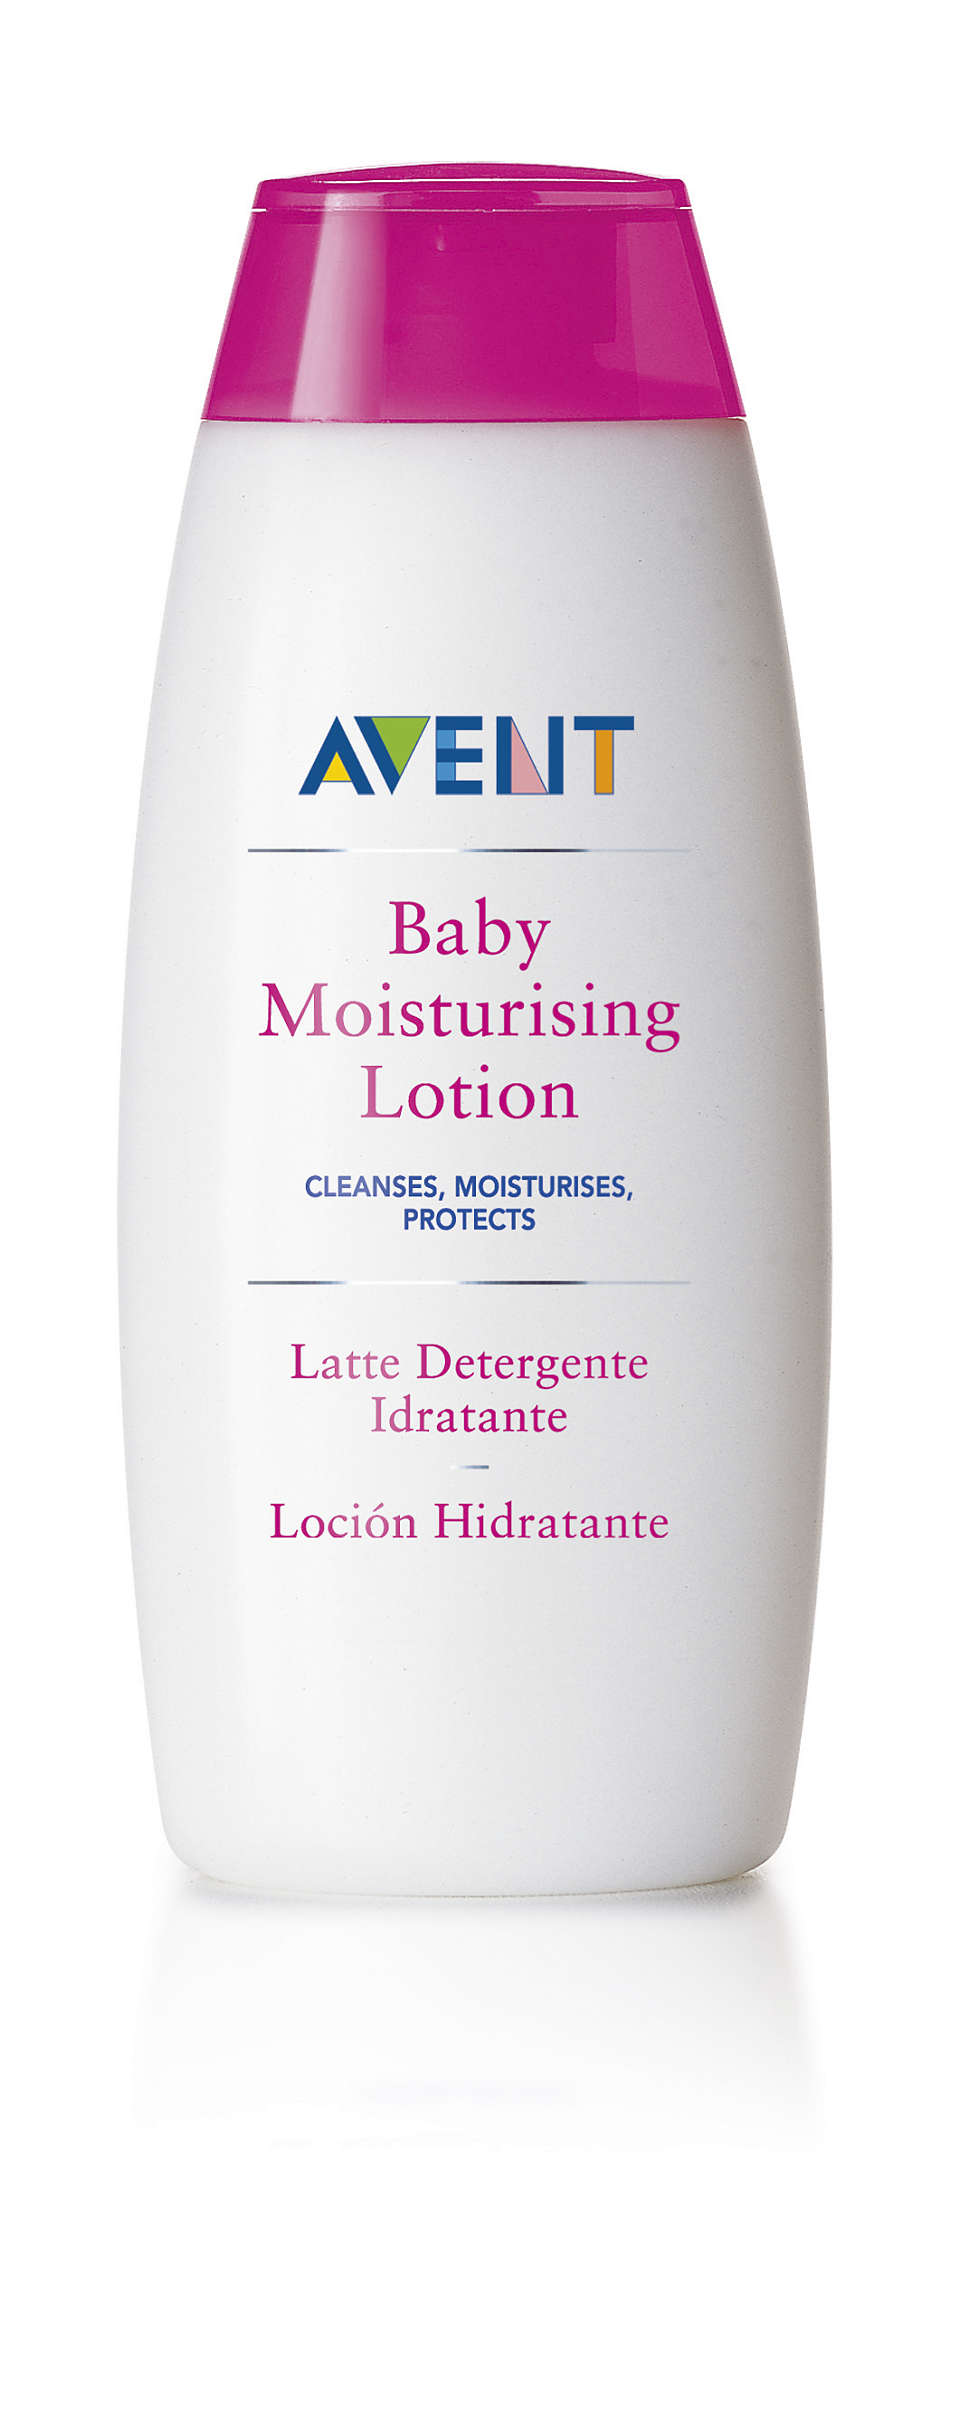 Cleanses, moisturises, protects